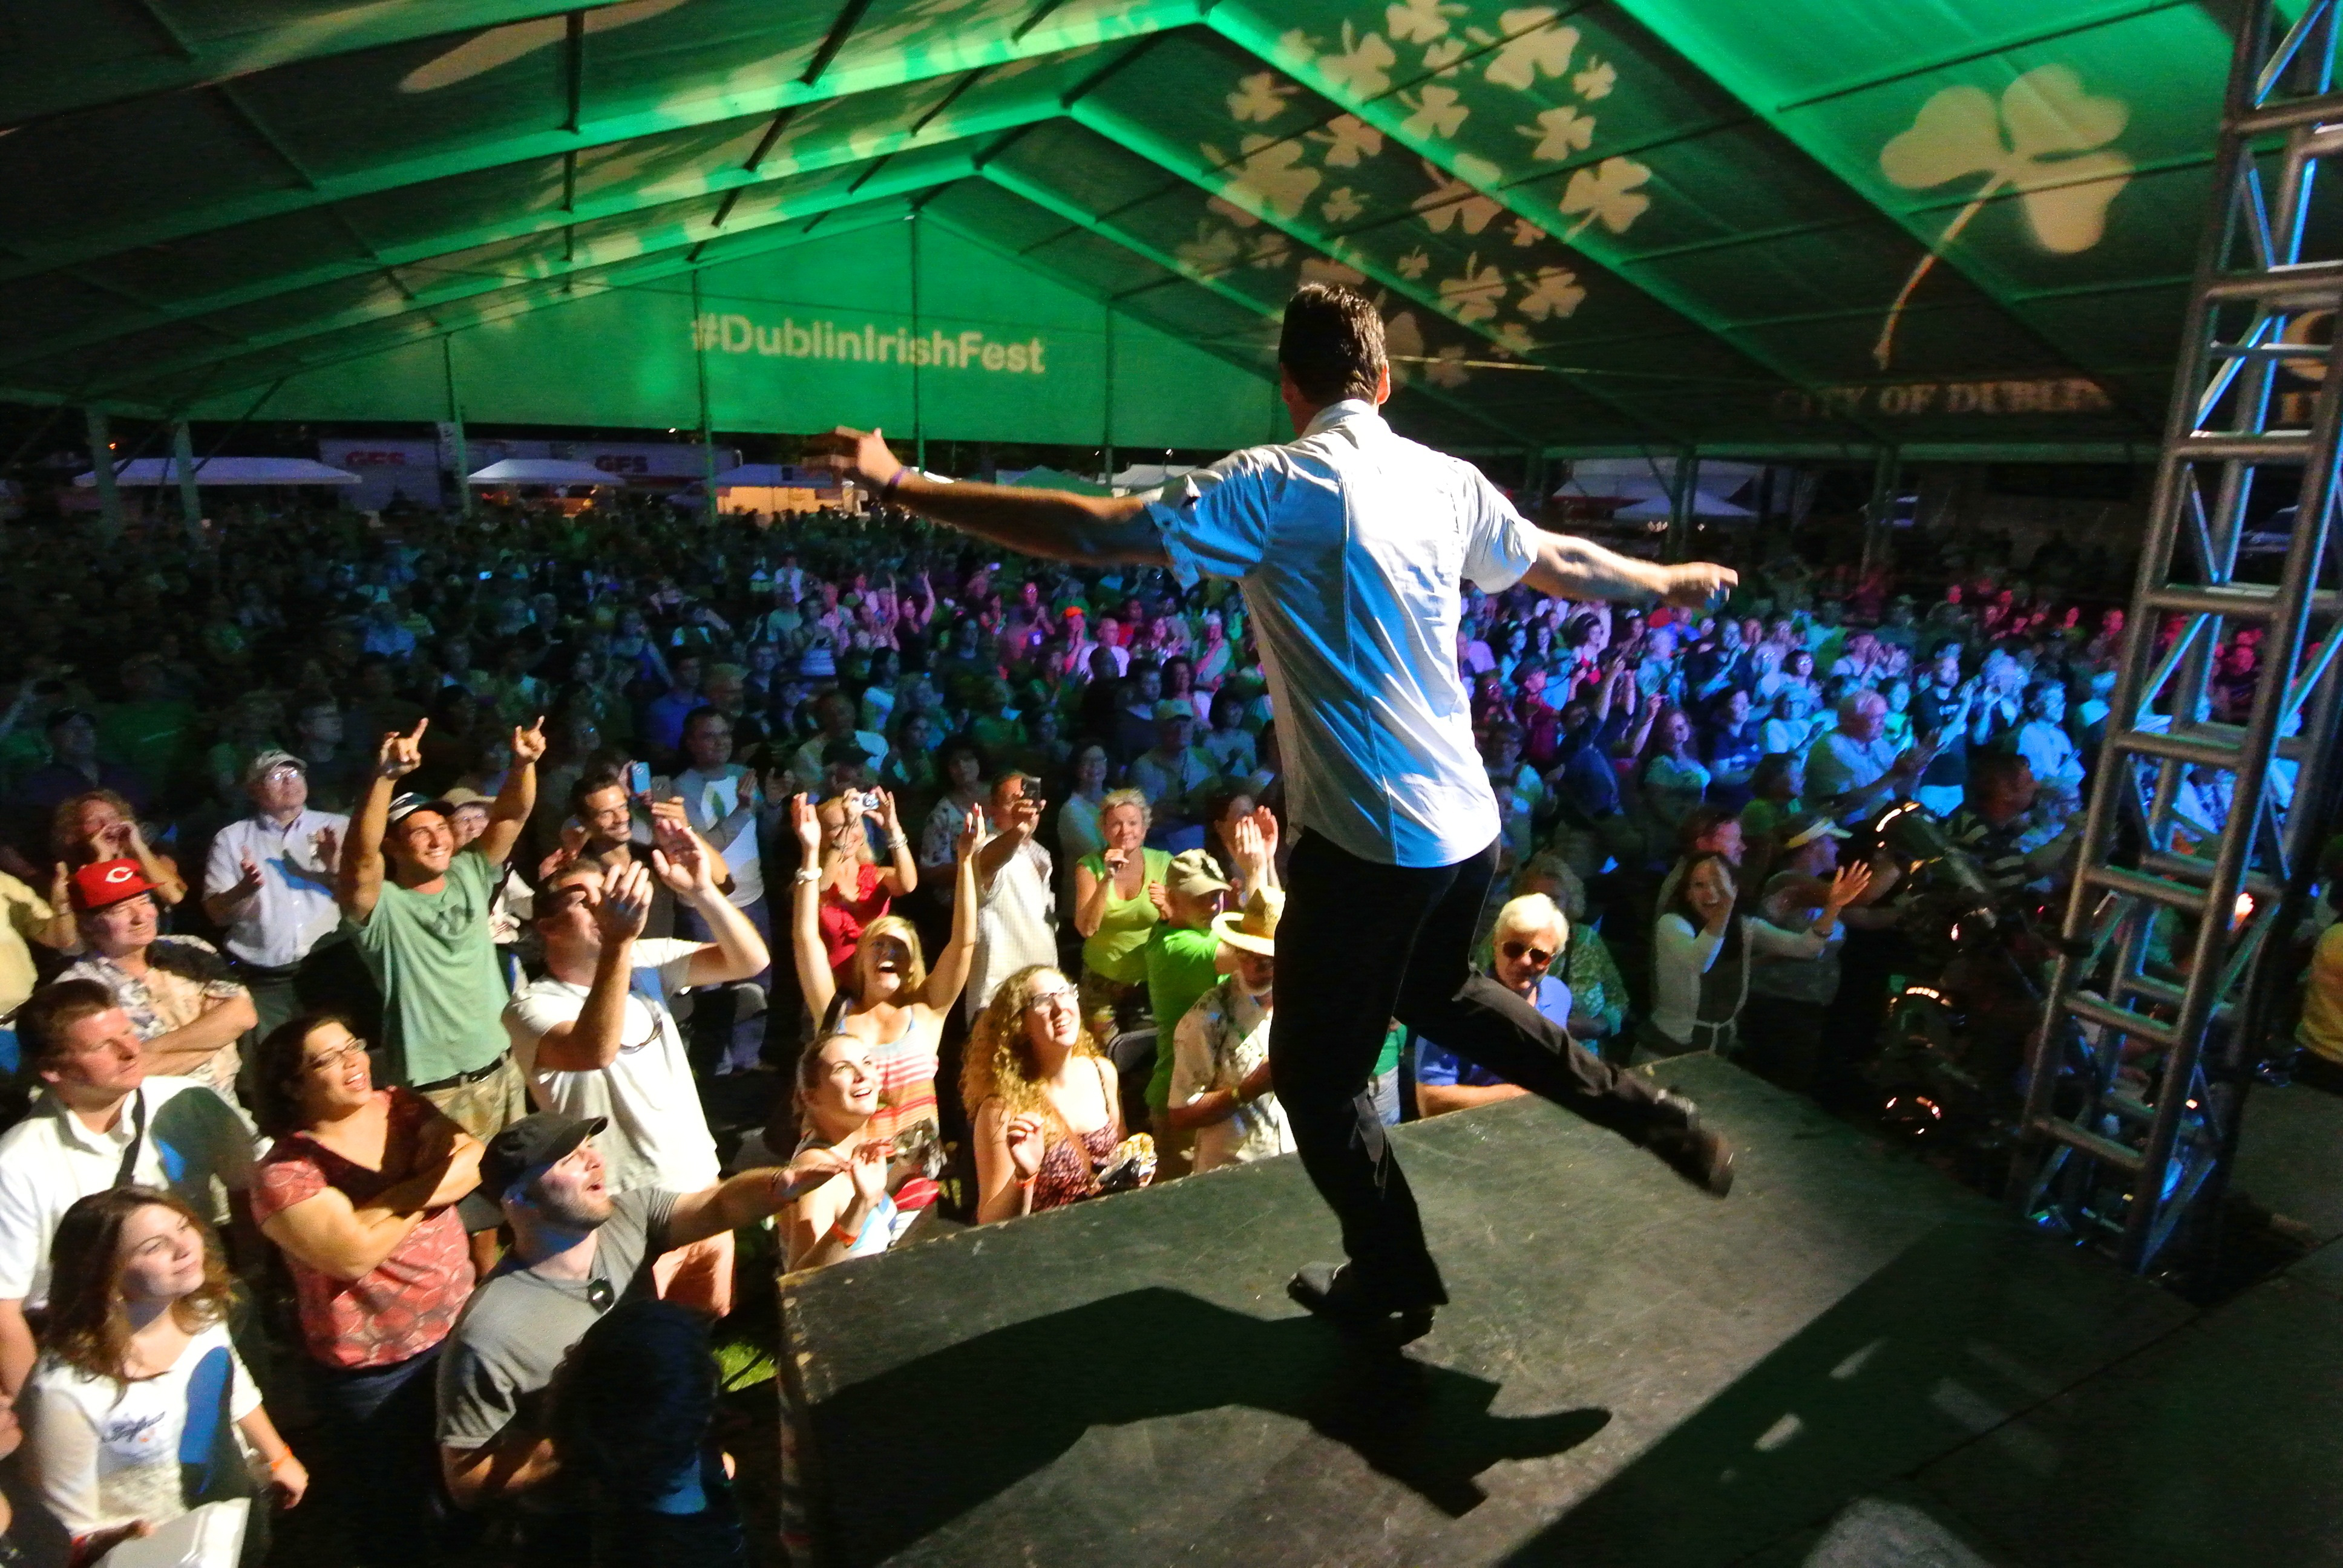 Dublin Irish Festival guests enjoy Irish entertainment on one of seven stages at #DublinIrishFest. (Photo: Business Wire)